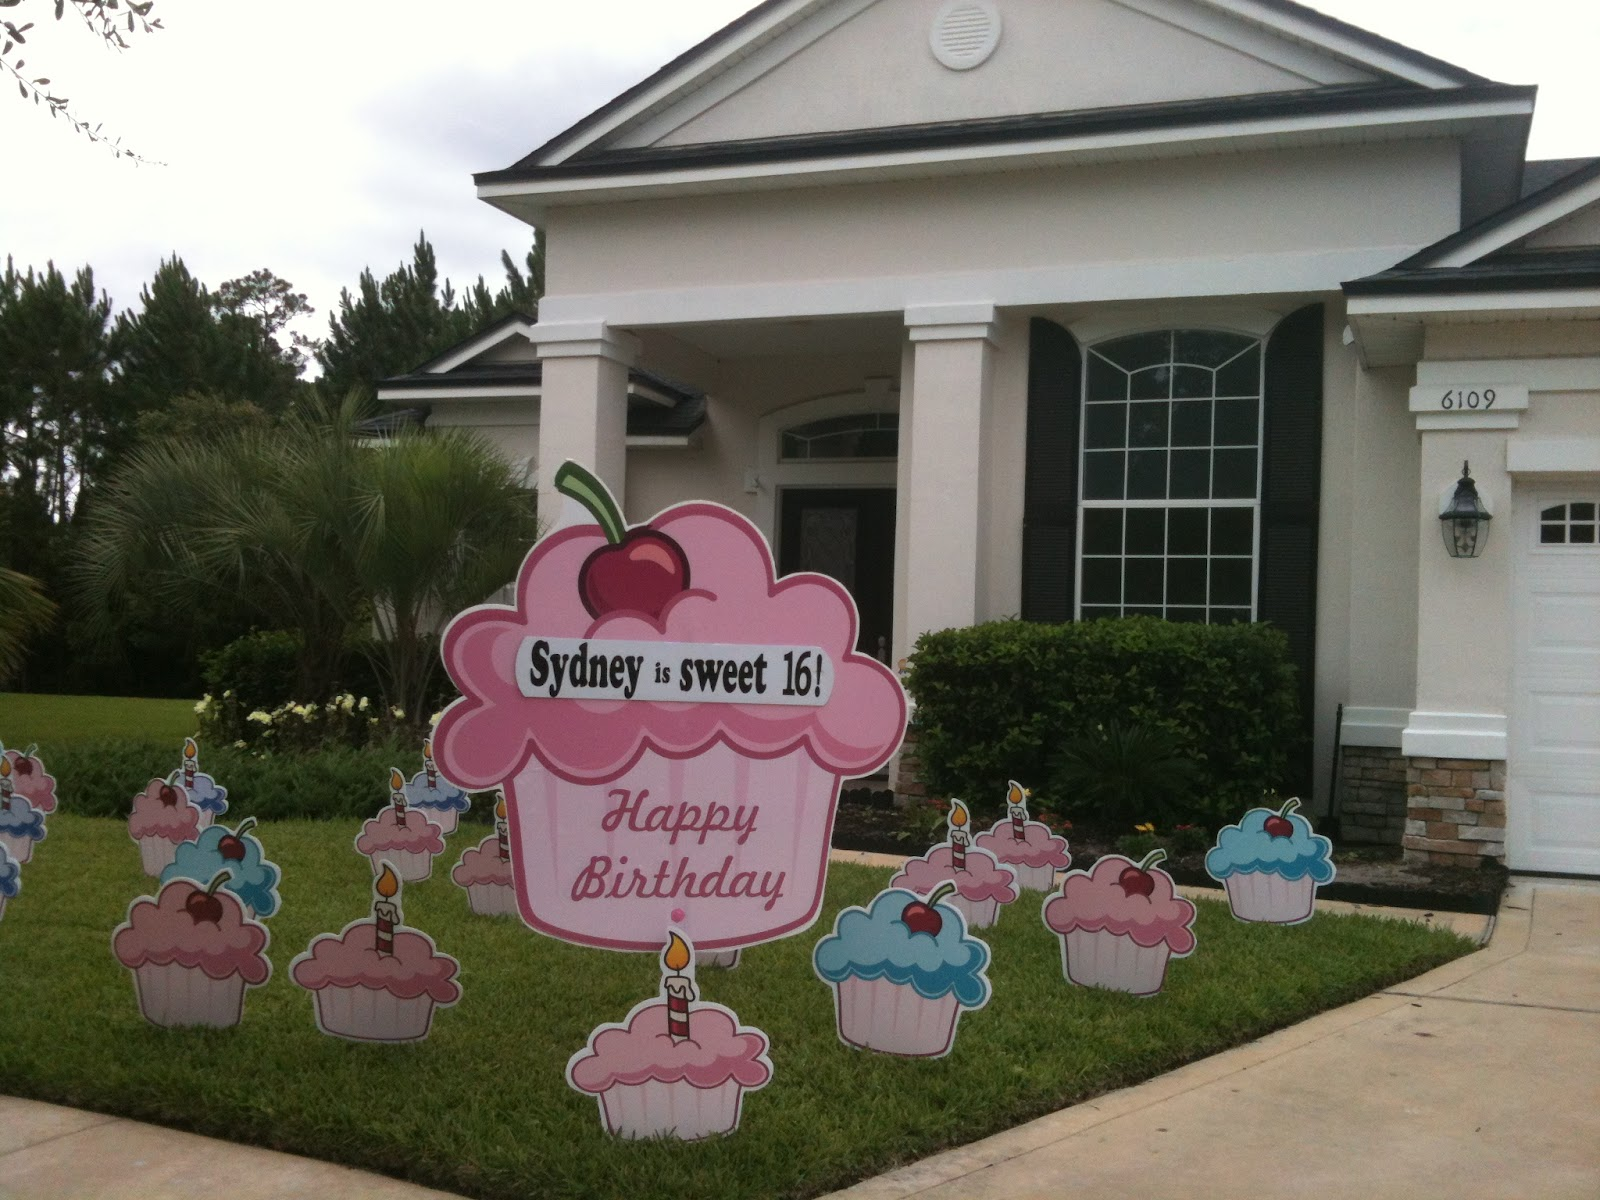 Big Yard Card In Jacksonville Delivers A Cupcake That Never Gets Old Wish Your SWEET 16 Happy Birthday From BIG YARD CARD